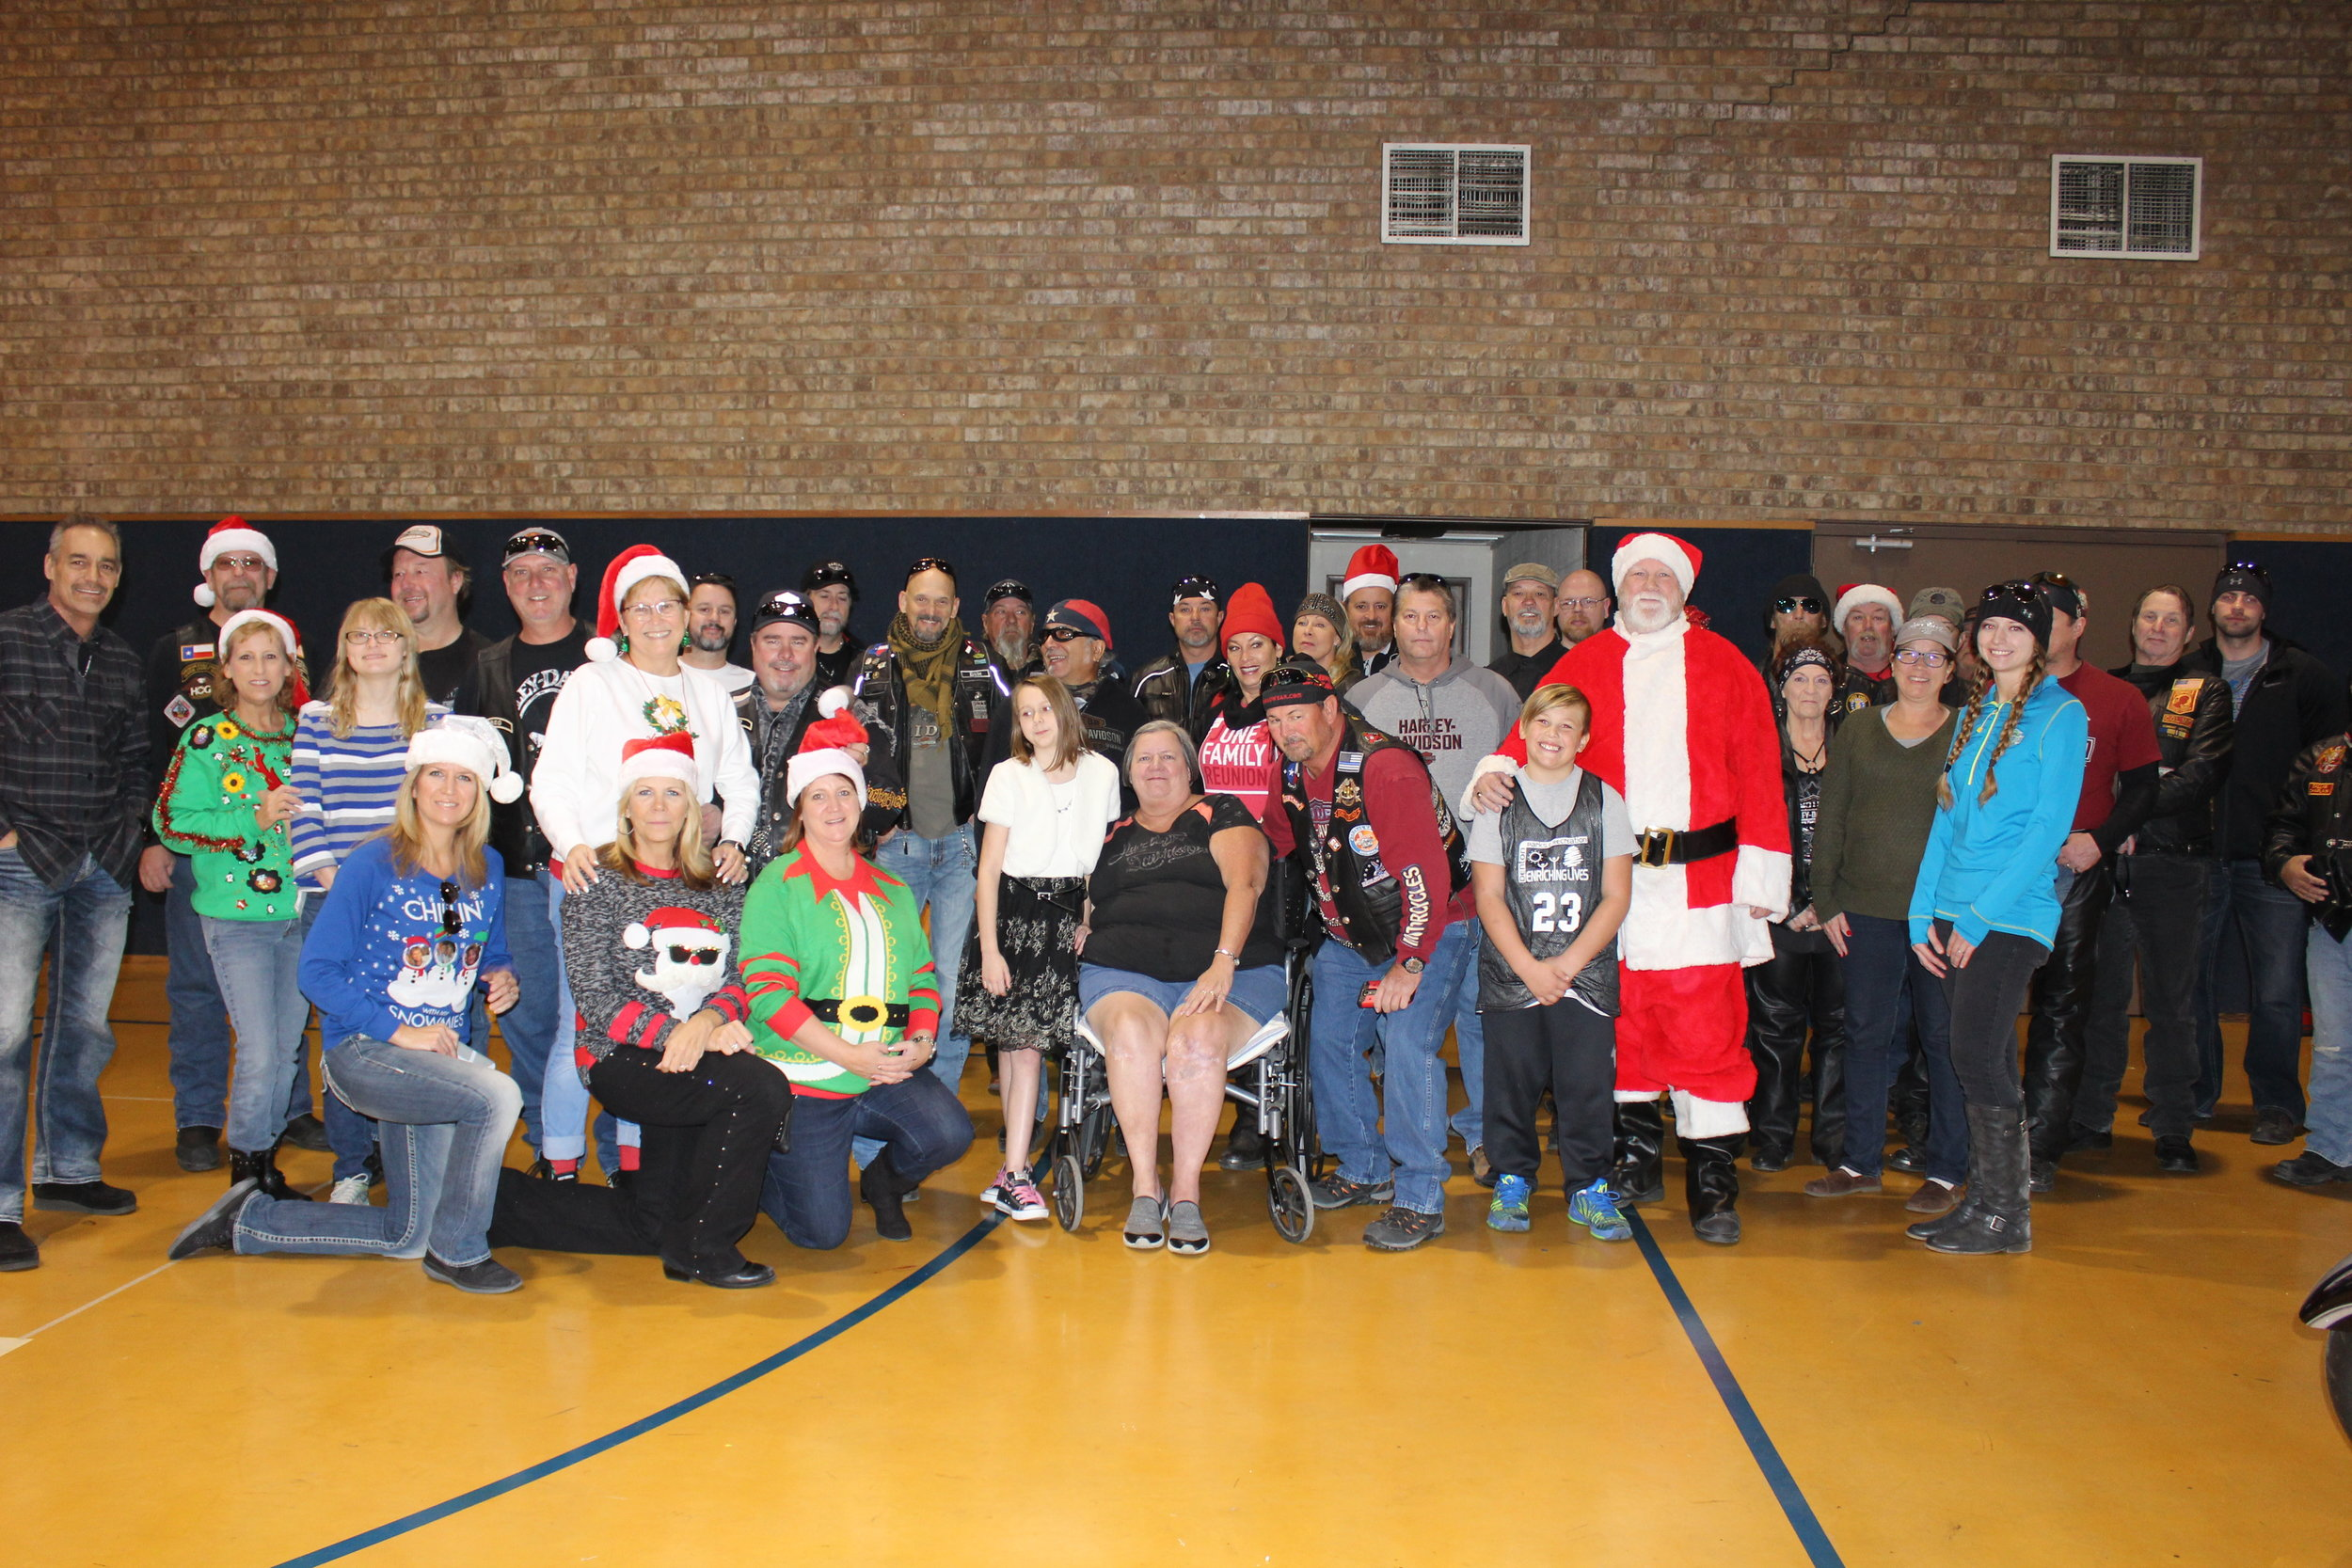 HarleyChristmas Party - December 2017 was an exciting time for the children's home. The American Eagle Harley group threw a wonderful annual Christmas party for our children & families complete with Santa, Harleys, presents, food and games. Thank you AE Hogs! What a fun time to brighten our kids lives.